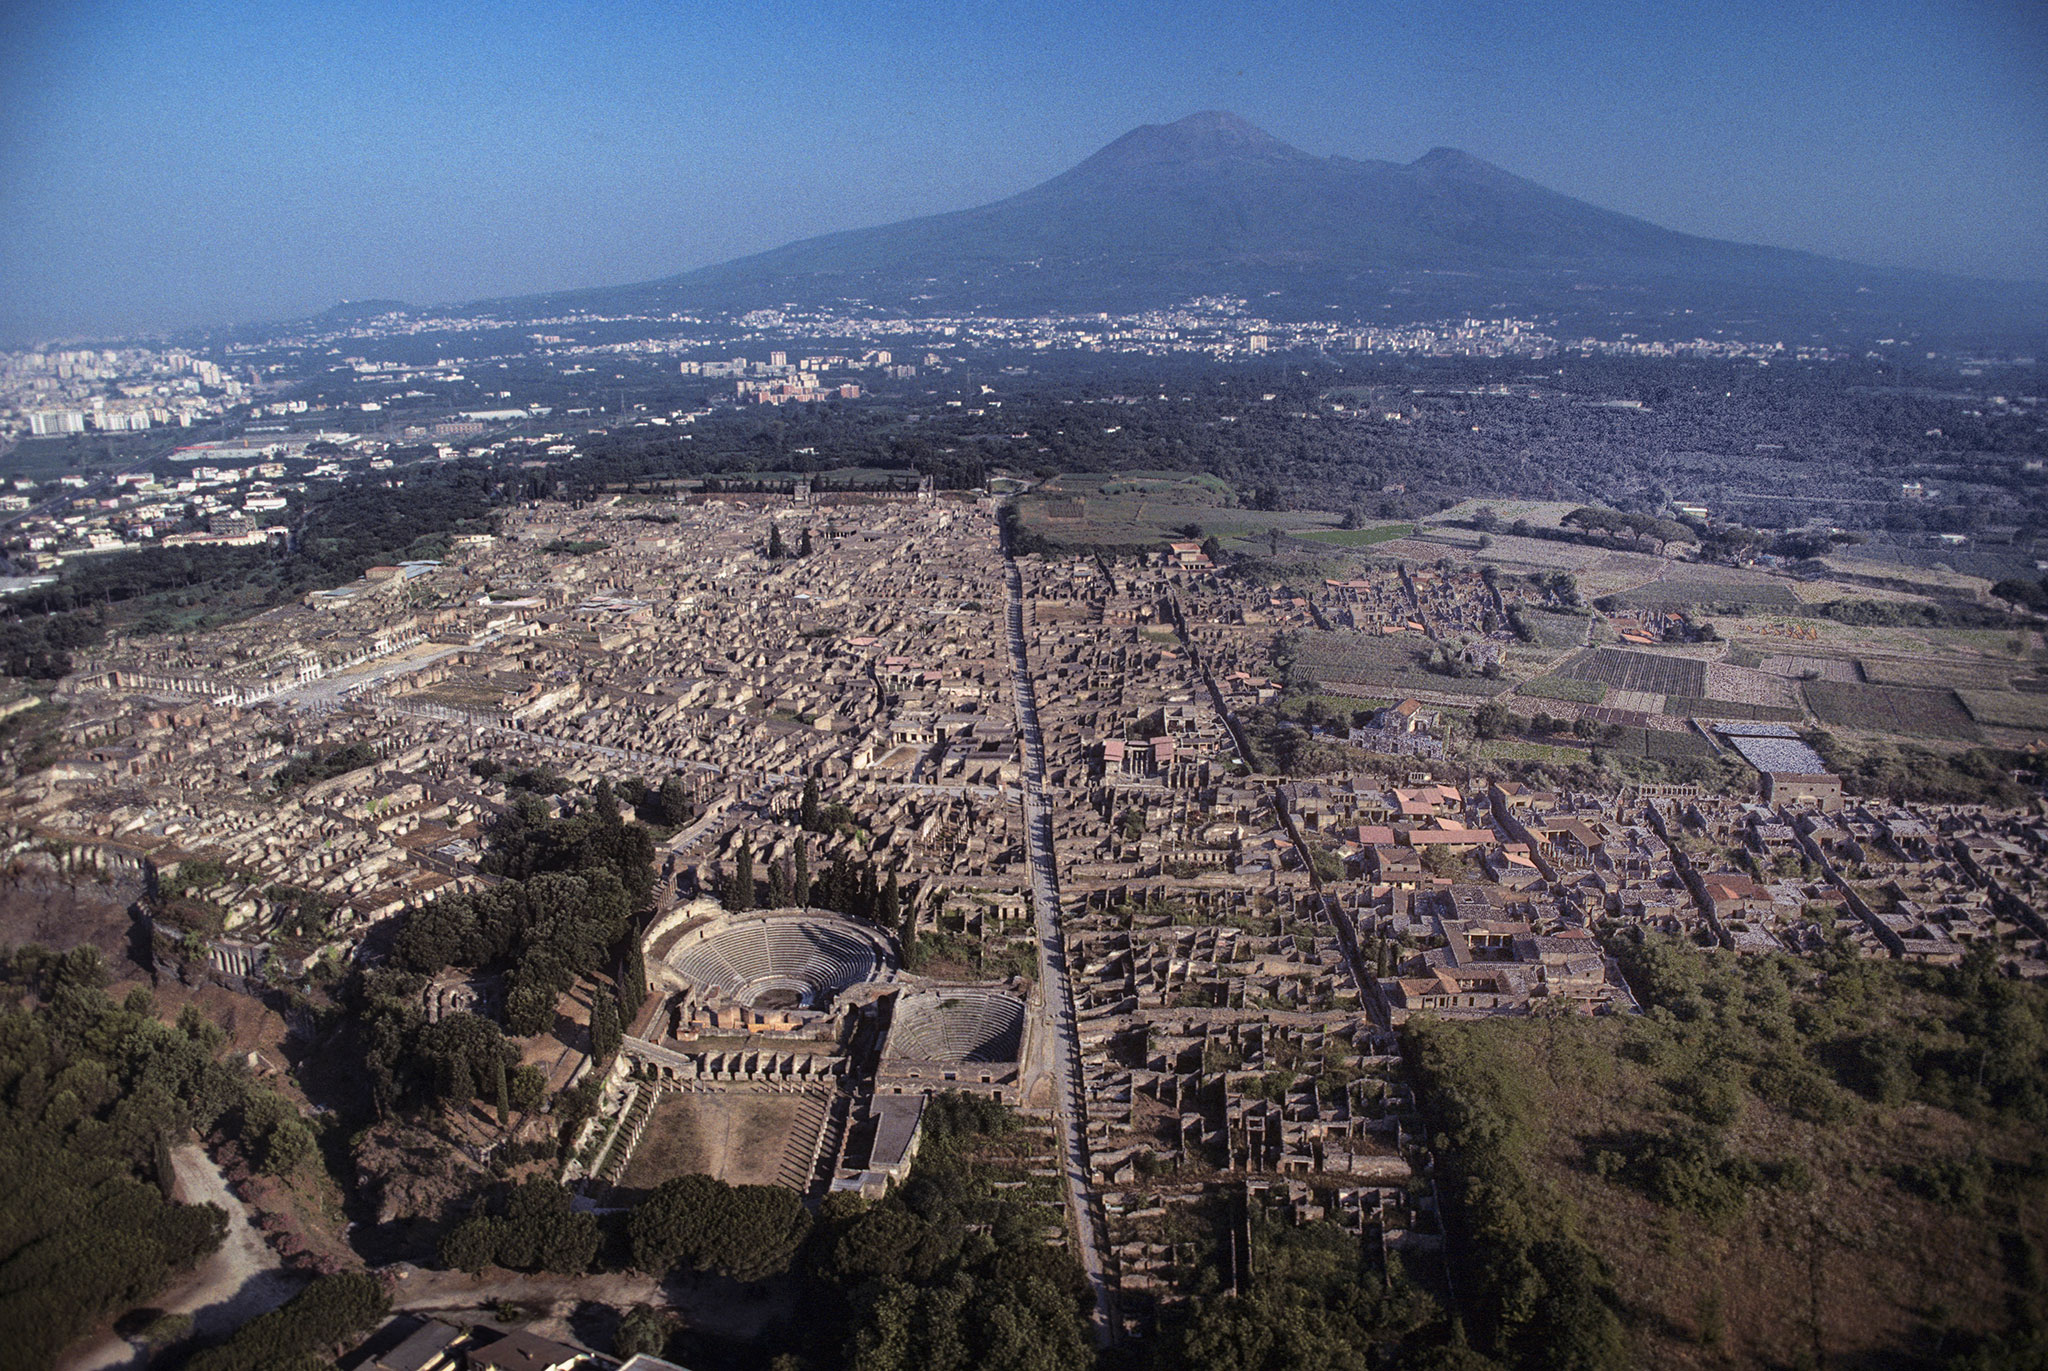 Bringing the Ghostly City of Pompeii Back to Life 2048x1371